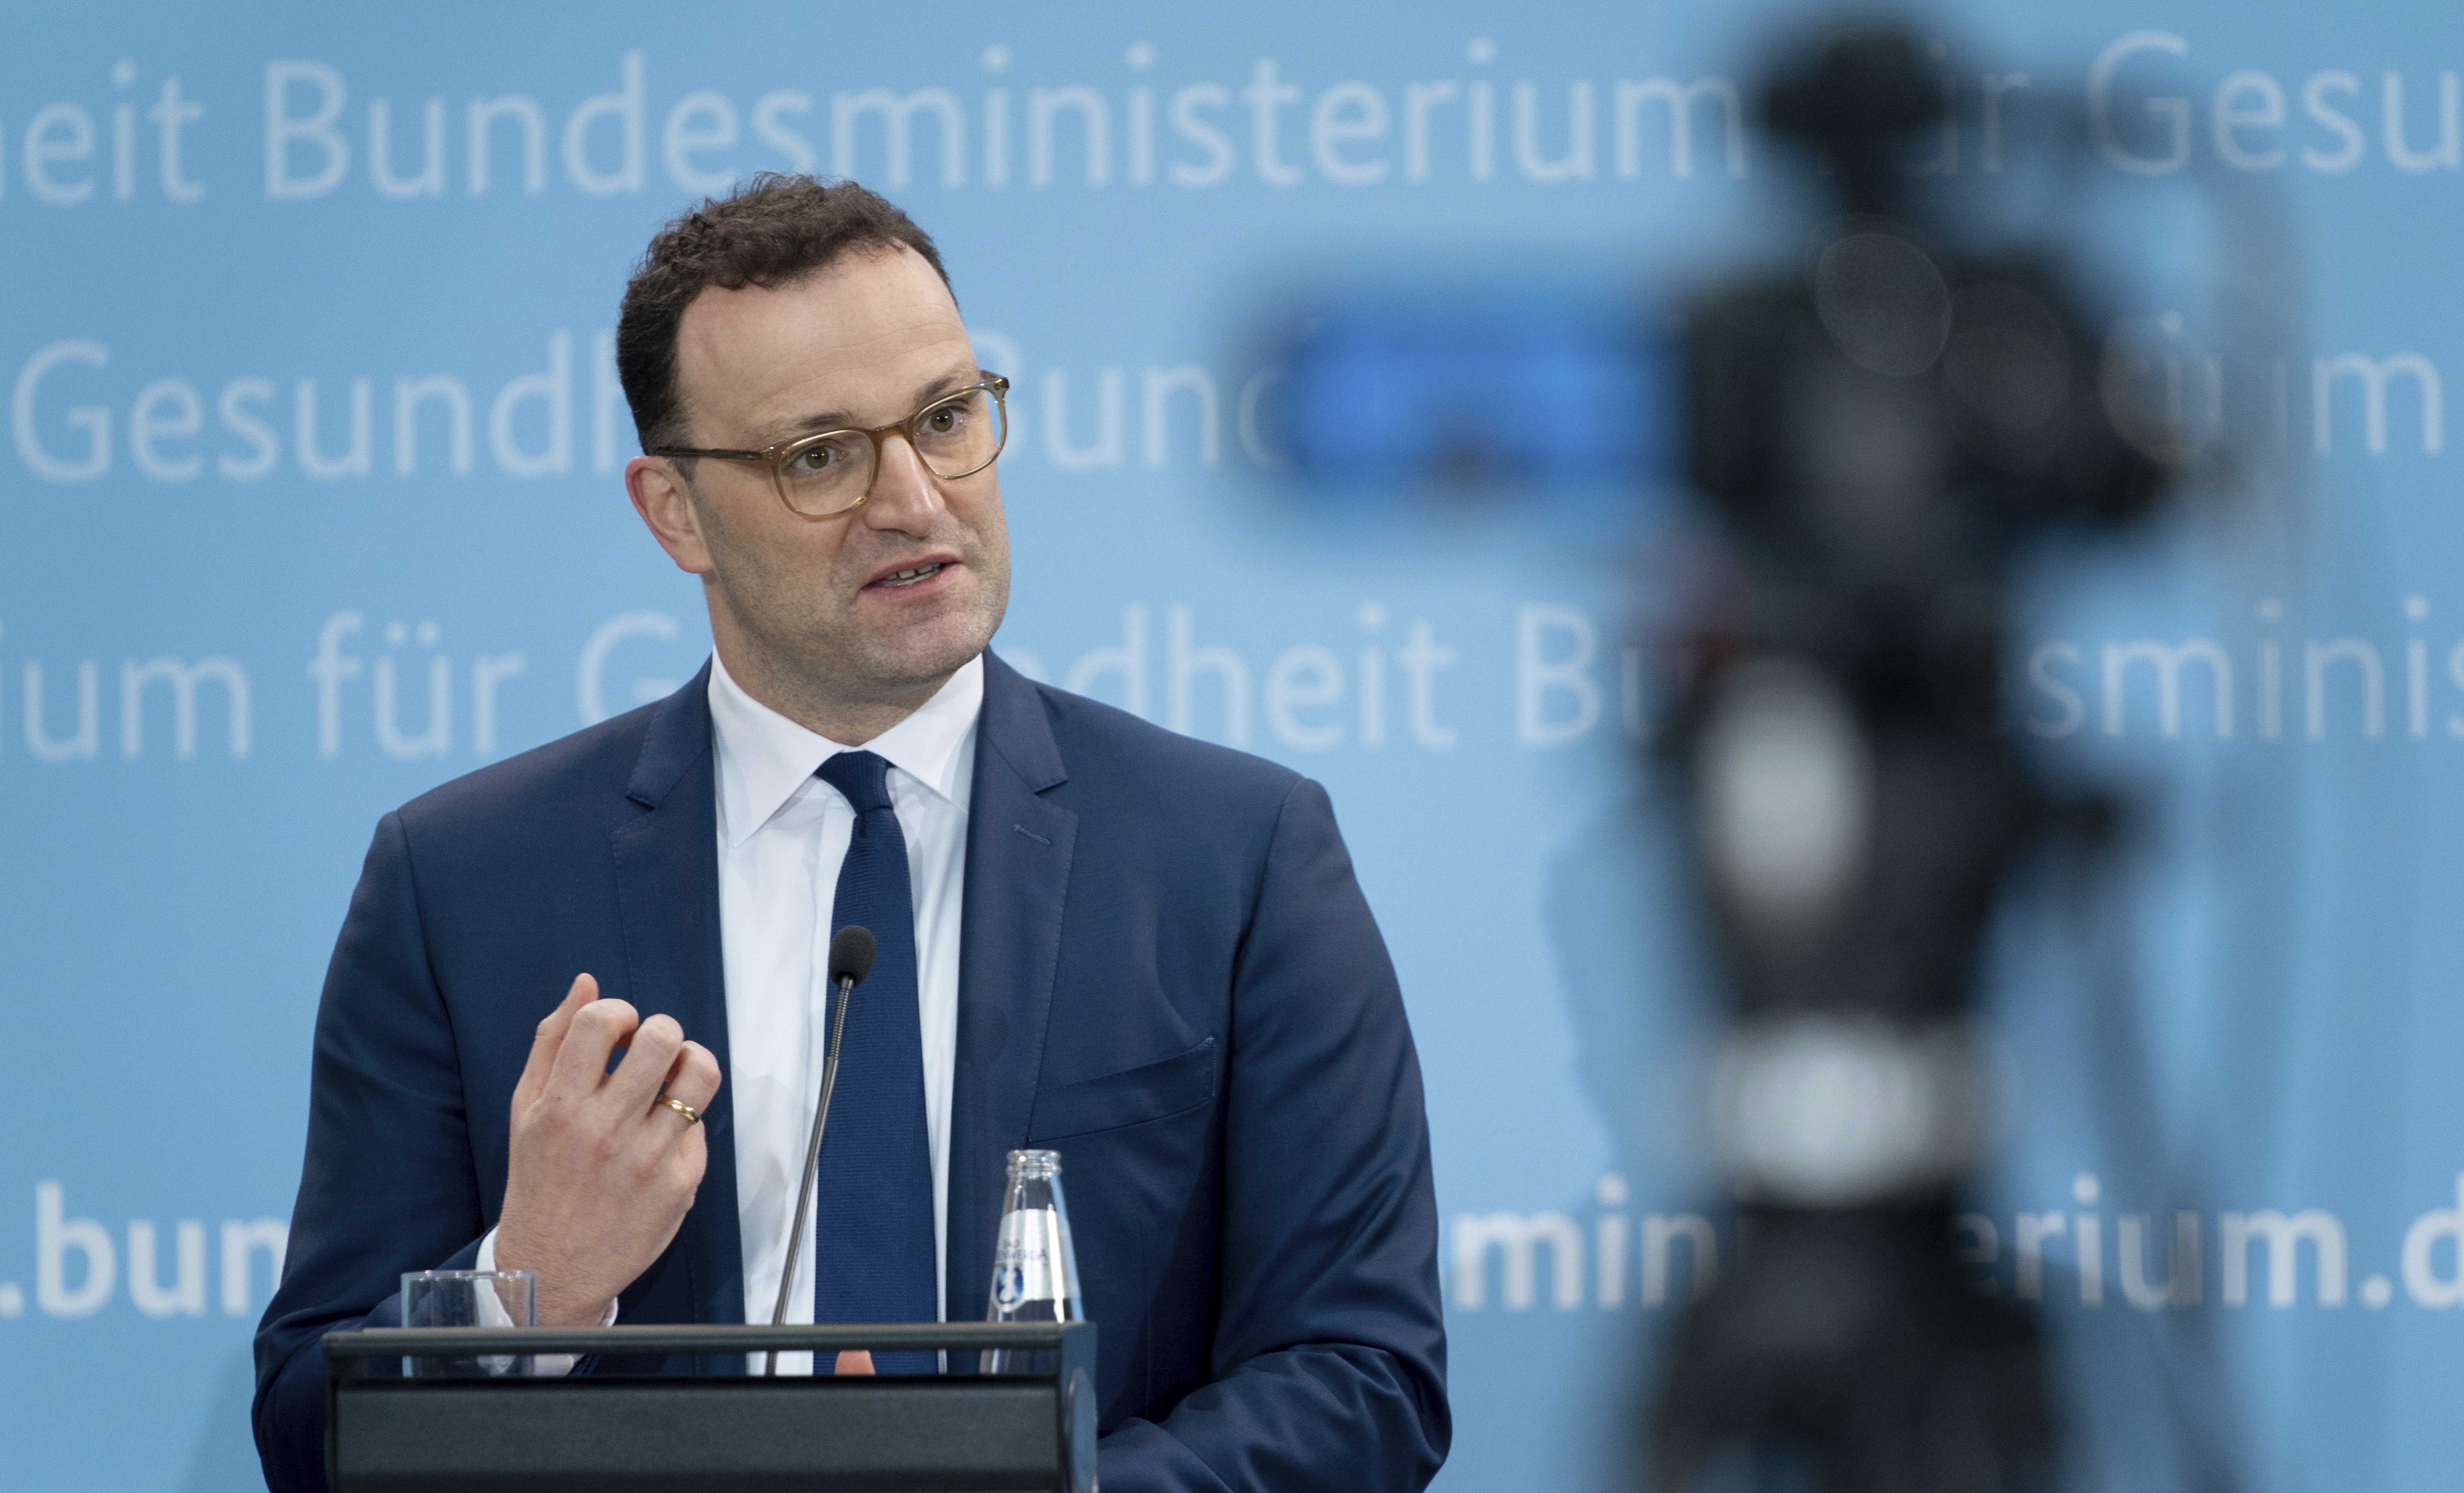 Jens Spahn (CDU), Federal Minister of Health, comments on the suspension of Astrazeneca's Corona vaccine at a press conference.